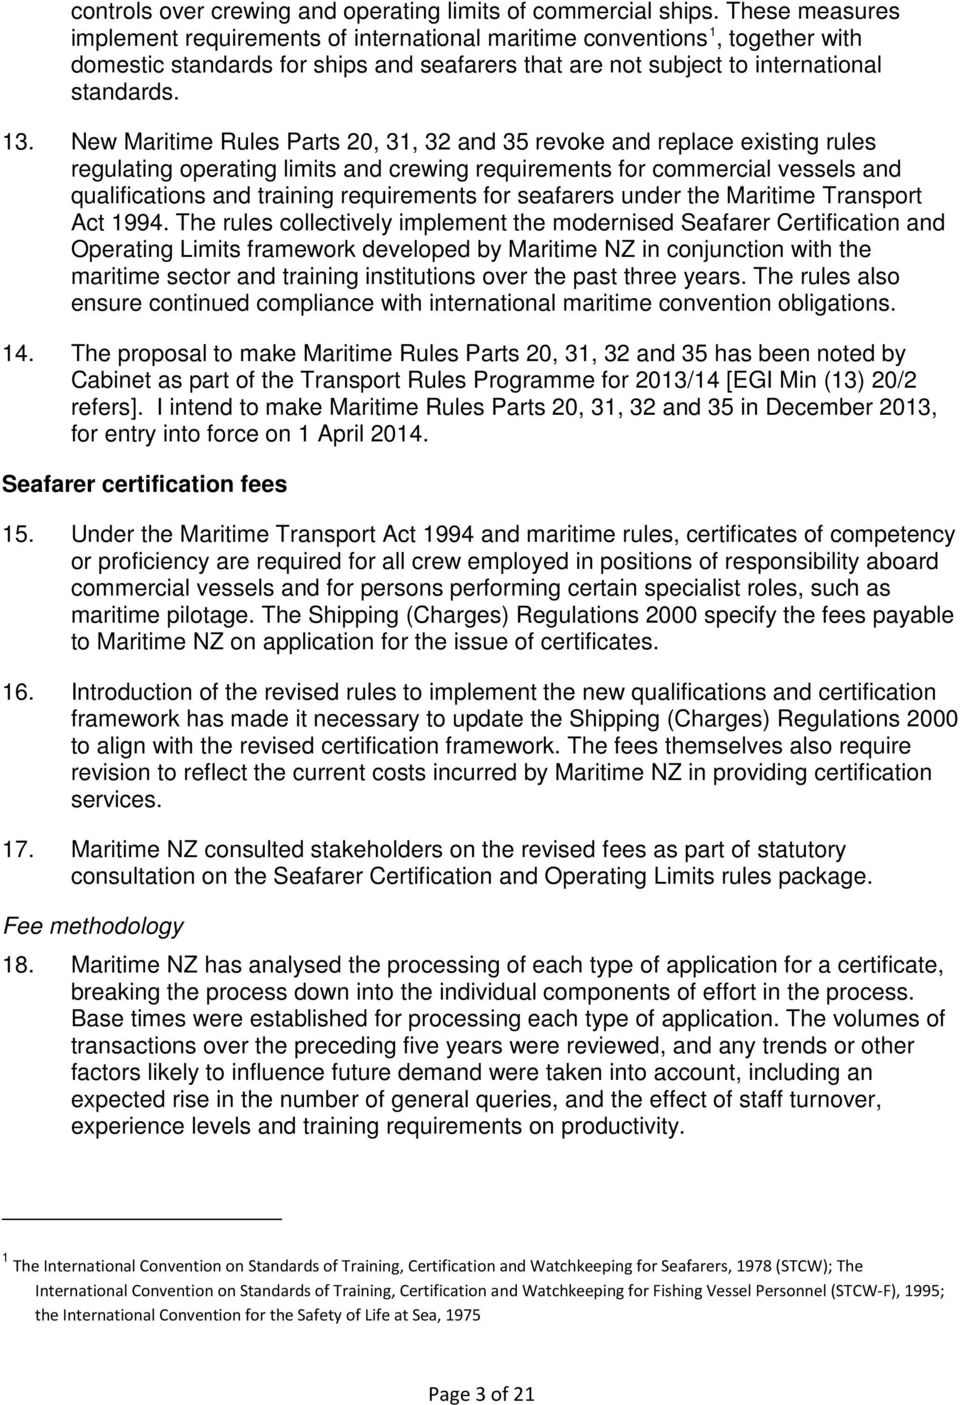 New Maritime Rules Parts 20, 31, 32 and 35 revoke and replace existing rules regulating operating limits and crewing requirements for commercial vessels and qualifications and training requirements